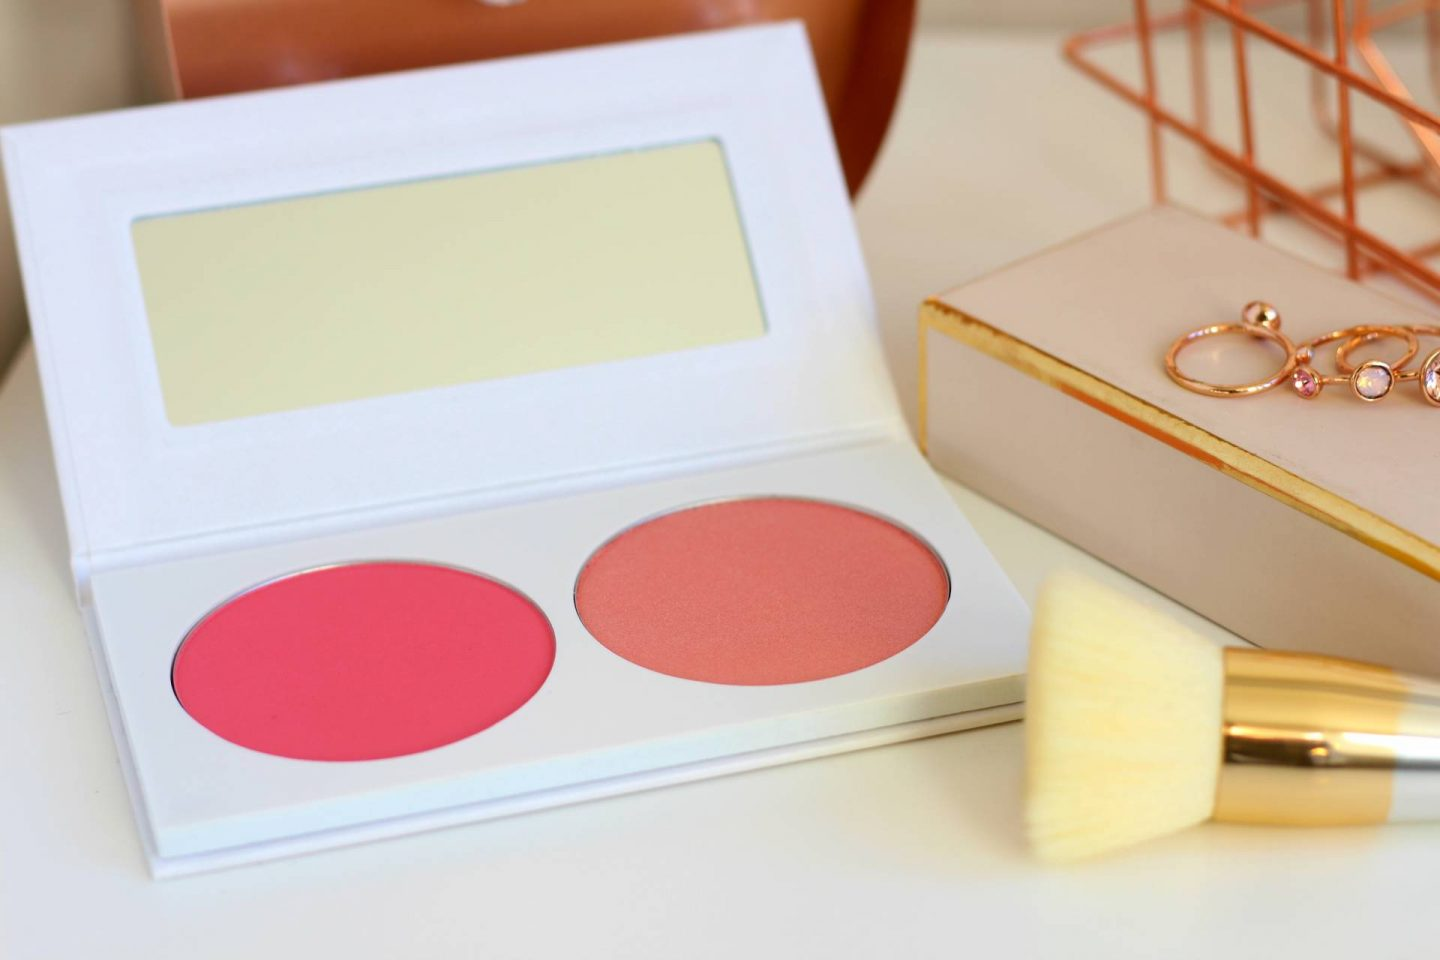 XIP Professional Pink Satin Blissful Blusher